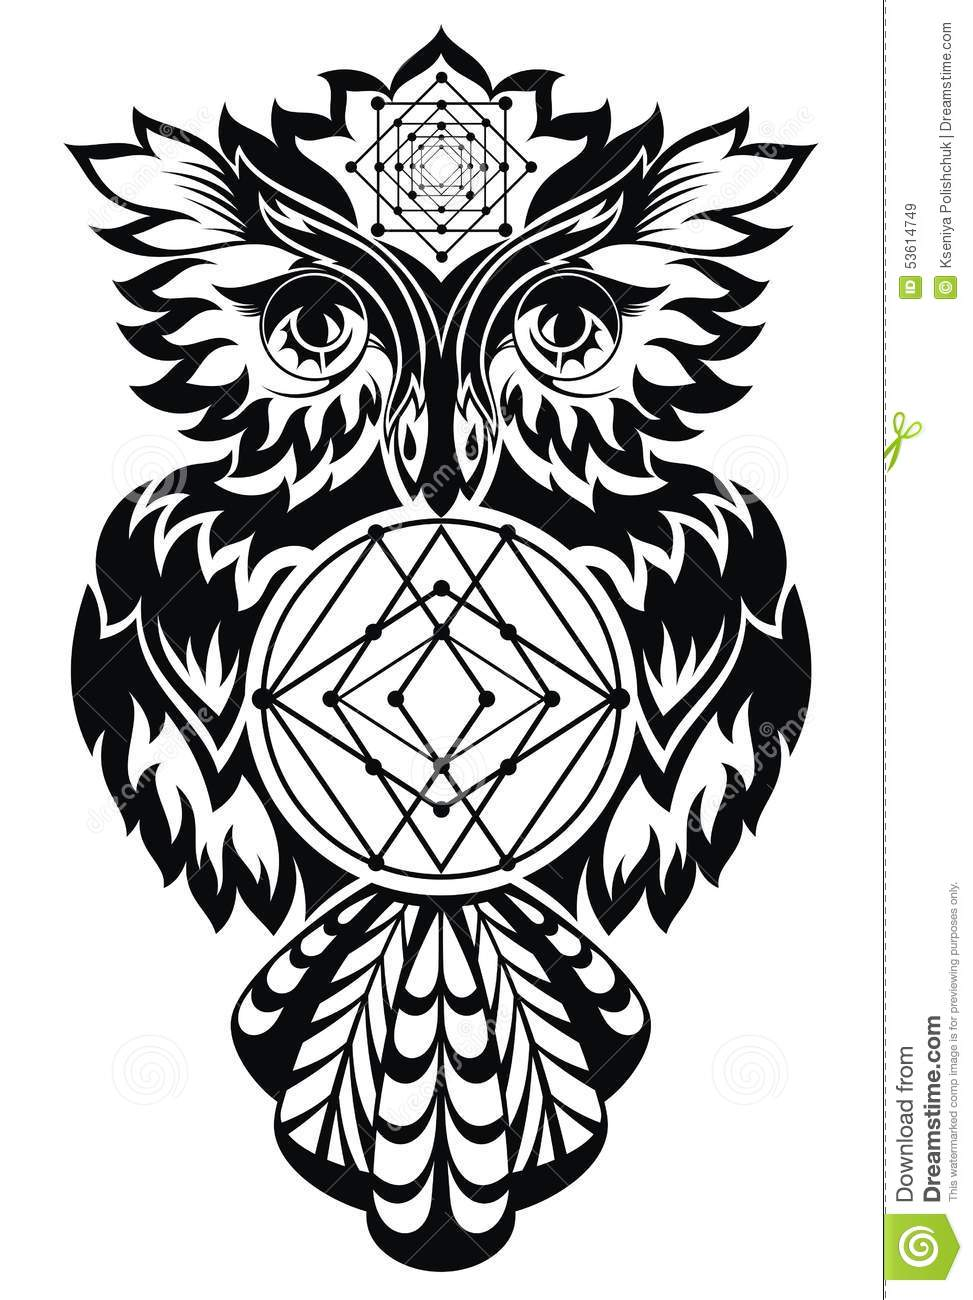 Owl Tattoo Design Illustration 53614749 Megapixl